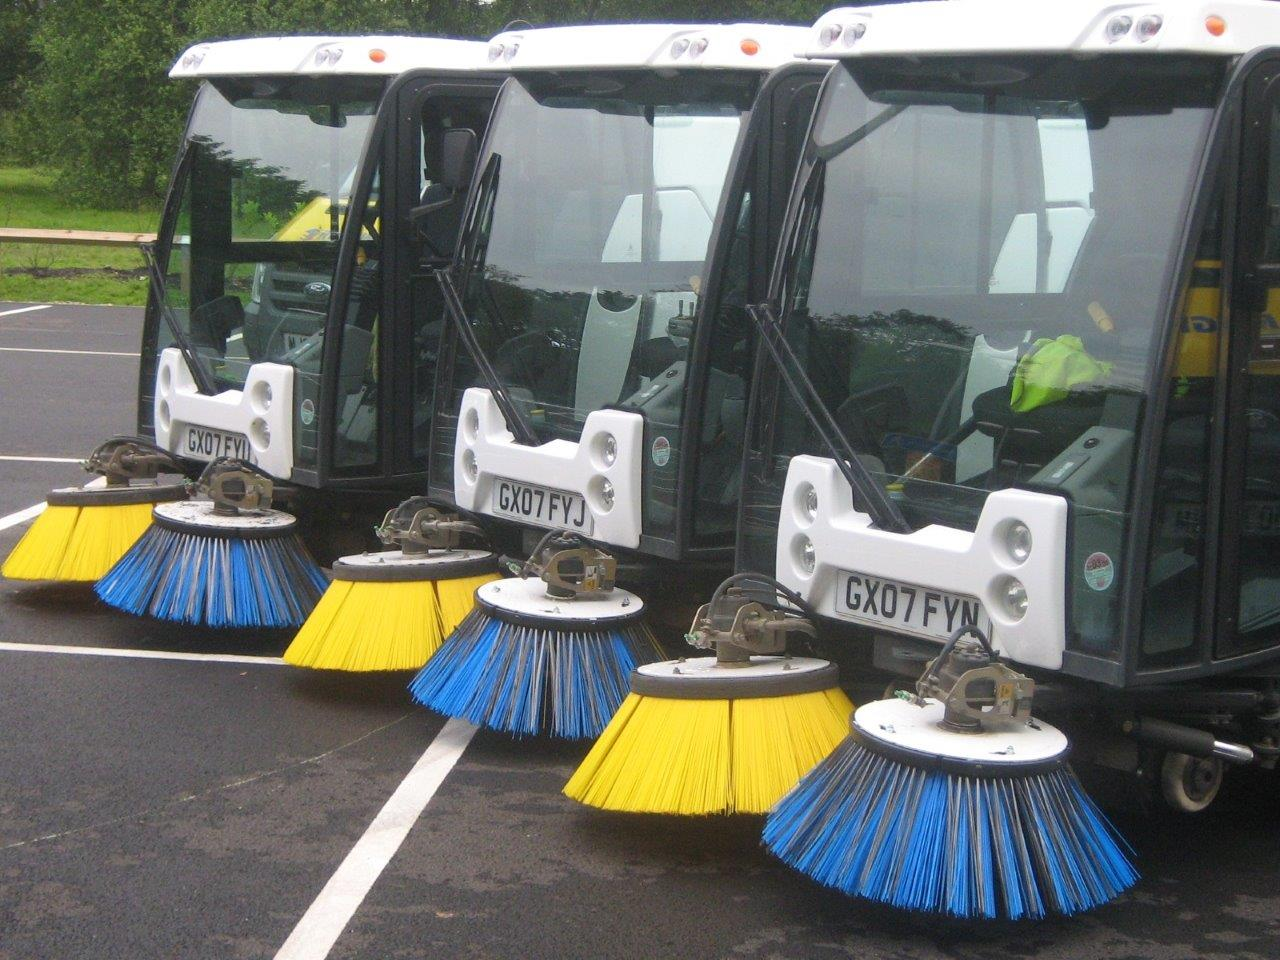 Picture showing three street cleansing vehicles